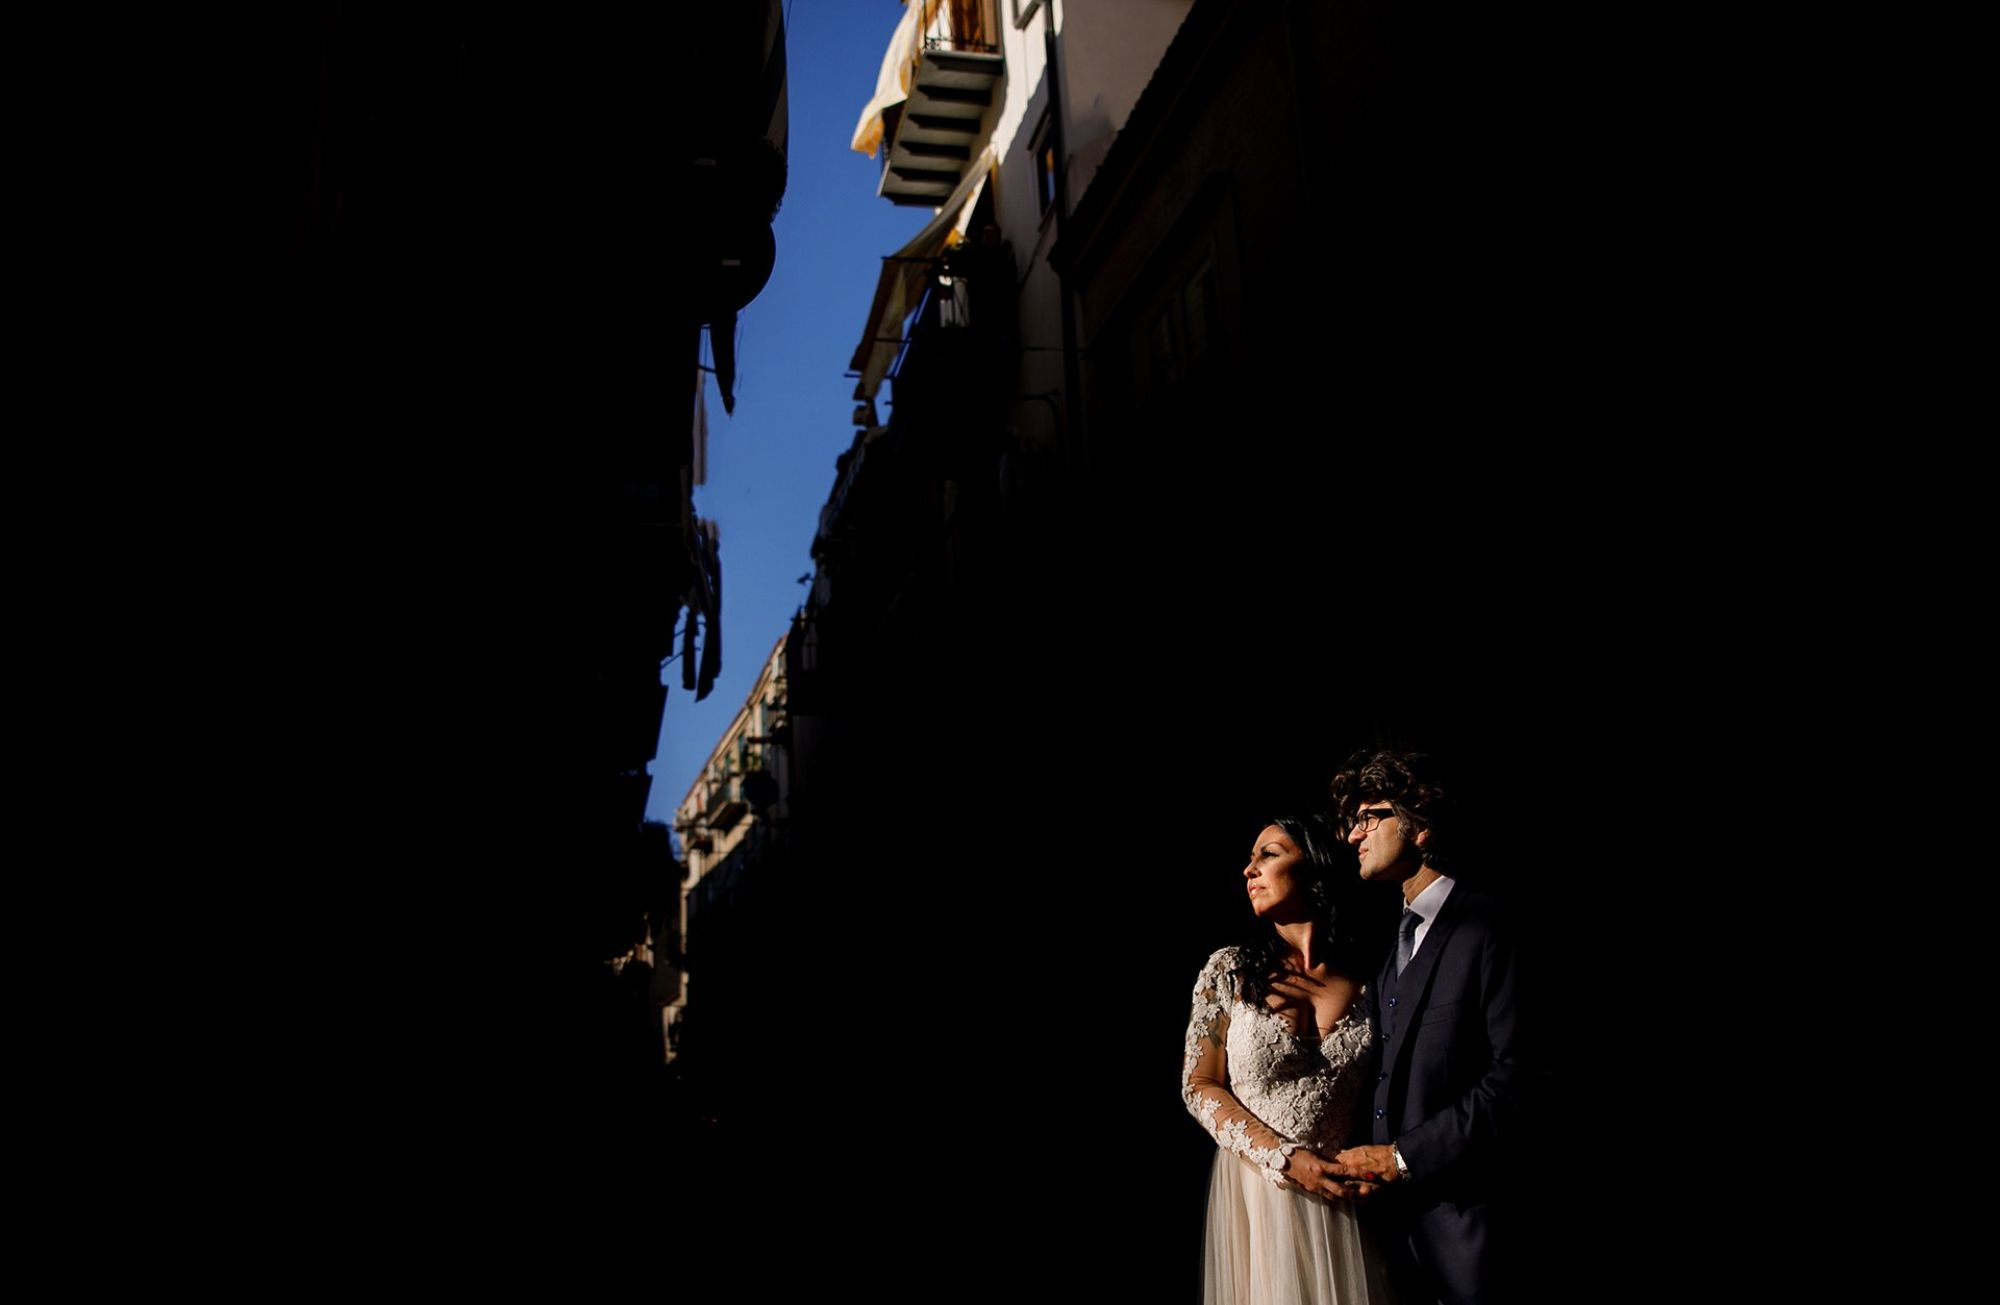 Click to enlarge image wedding-photo-rita-viscuso-masterphoto-cefalu 28.jpg